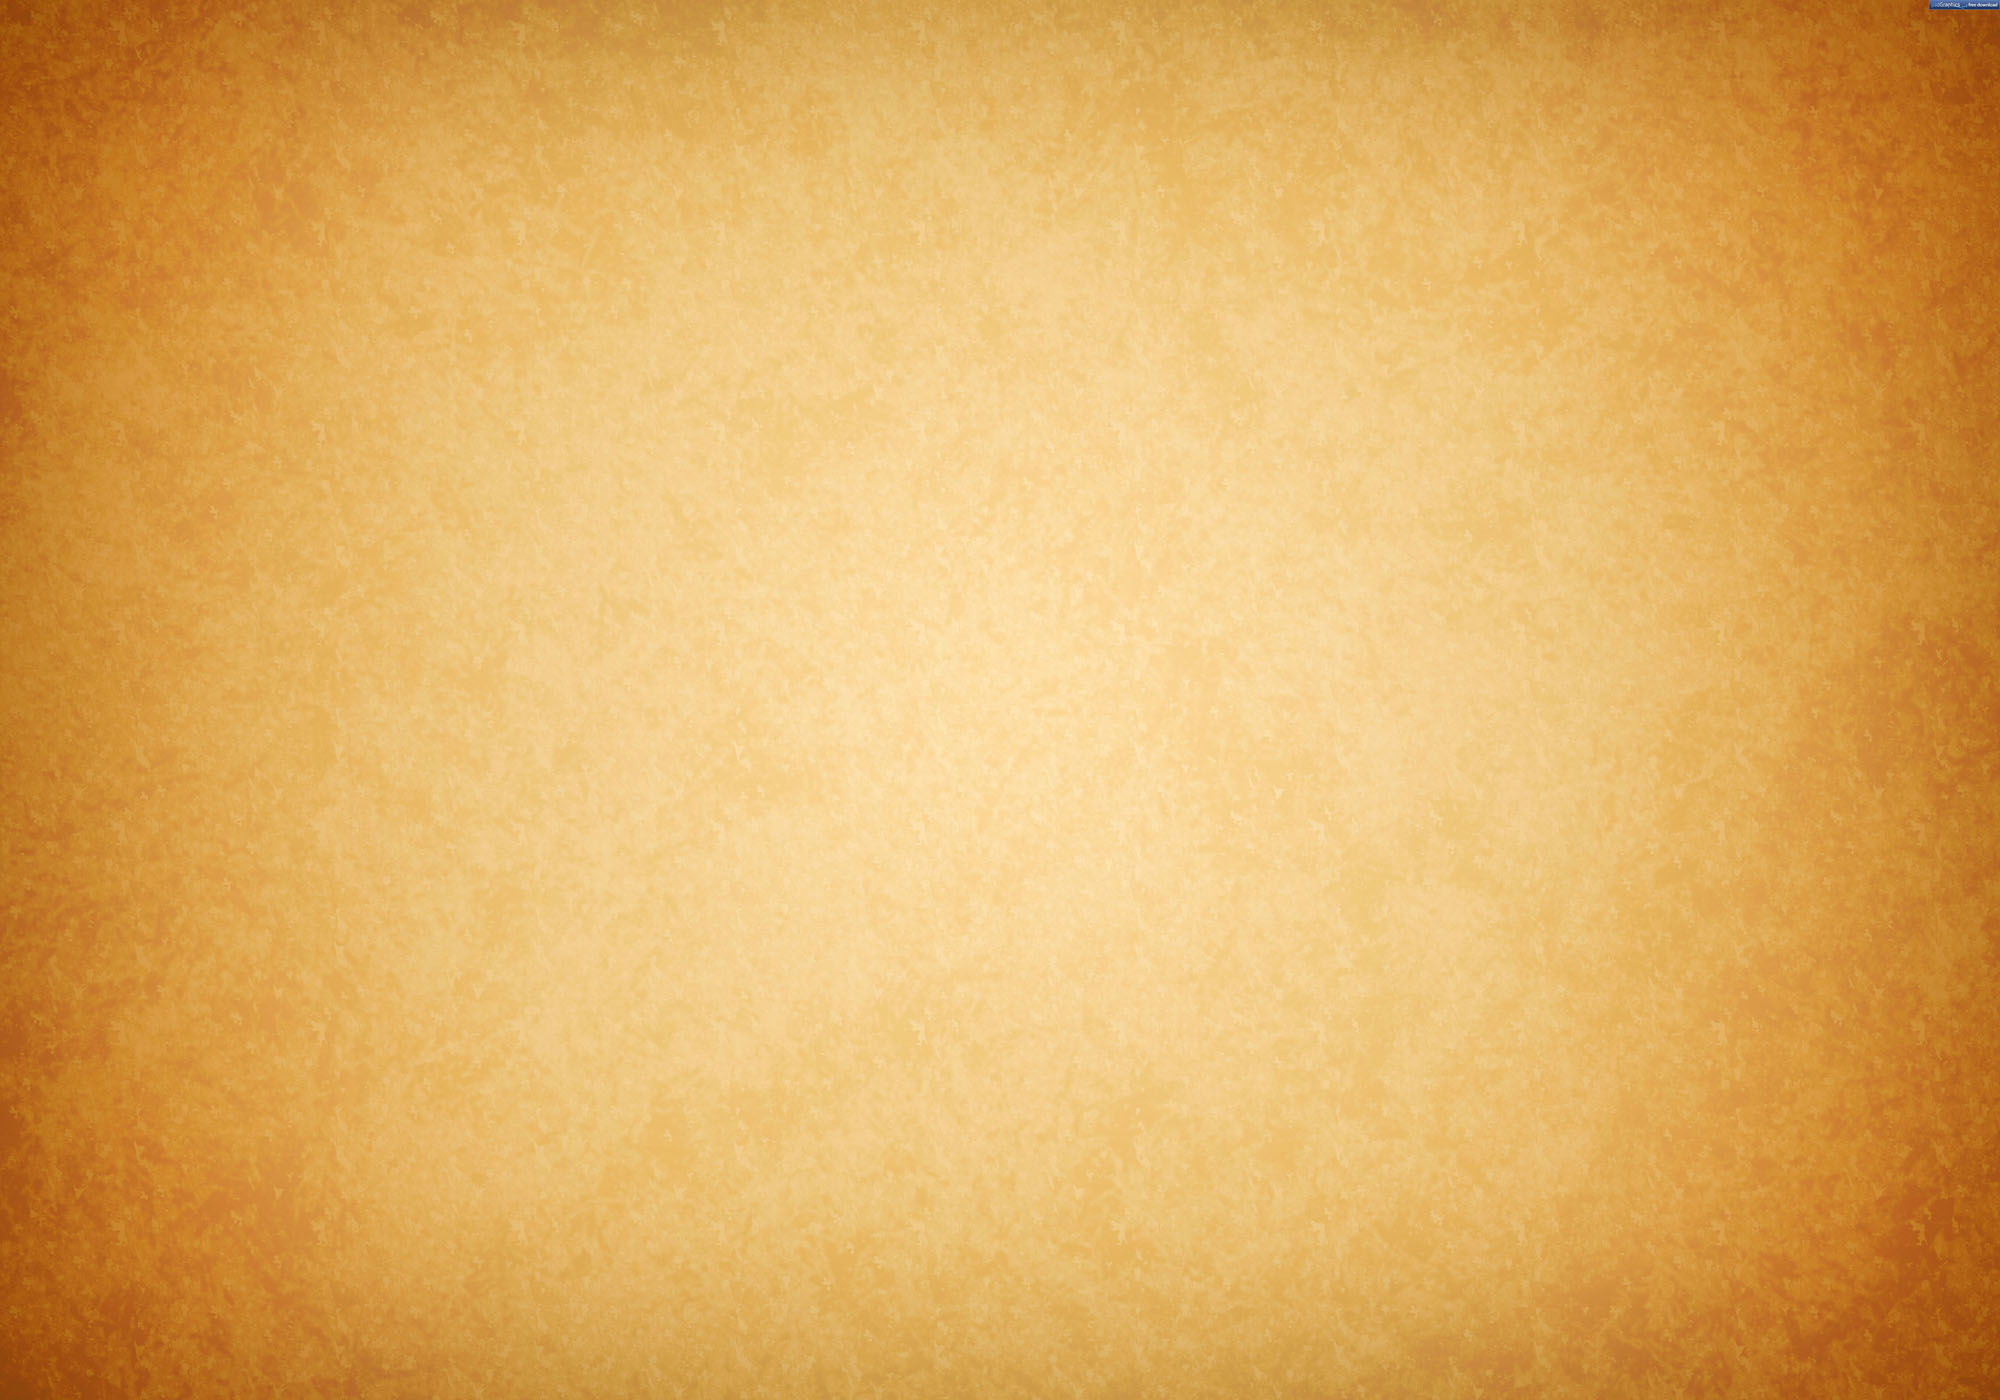 Background color 11747